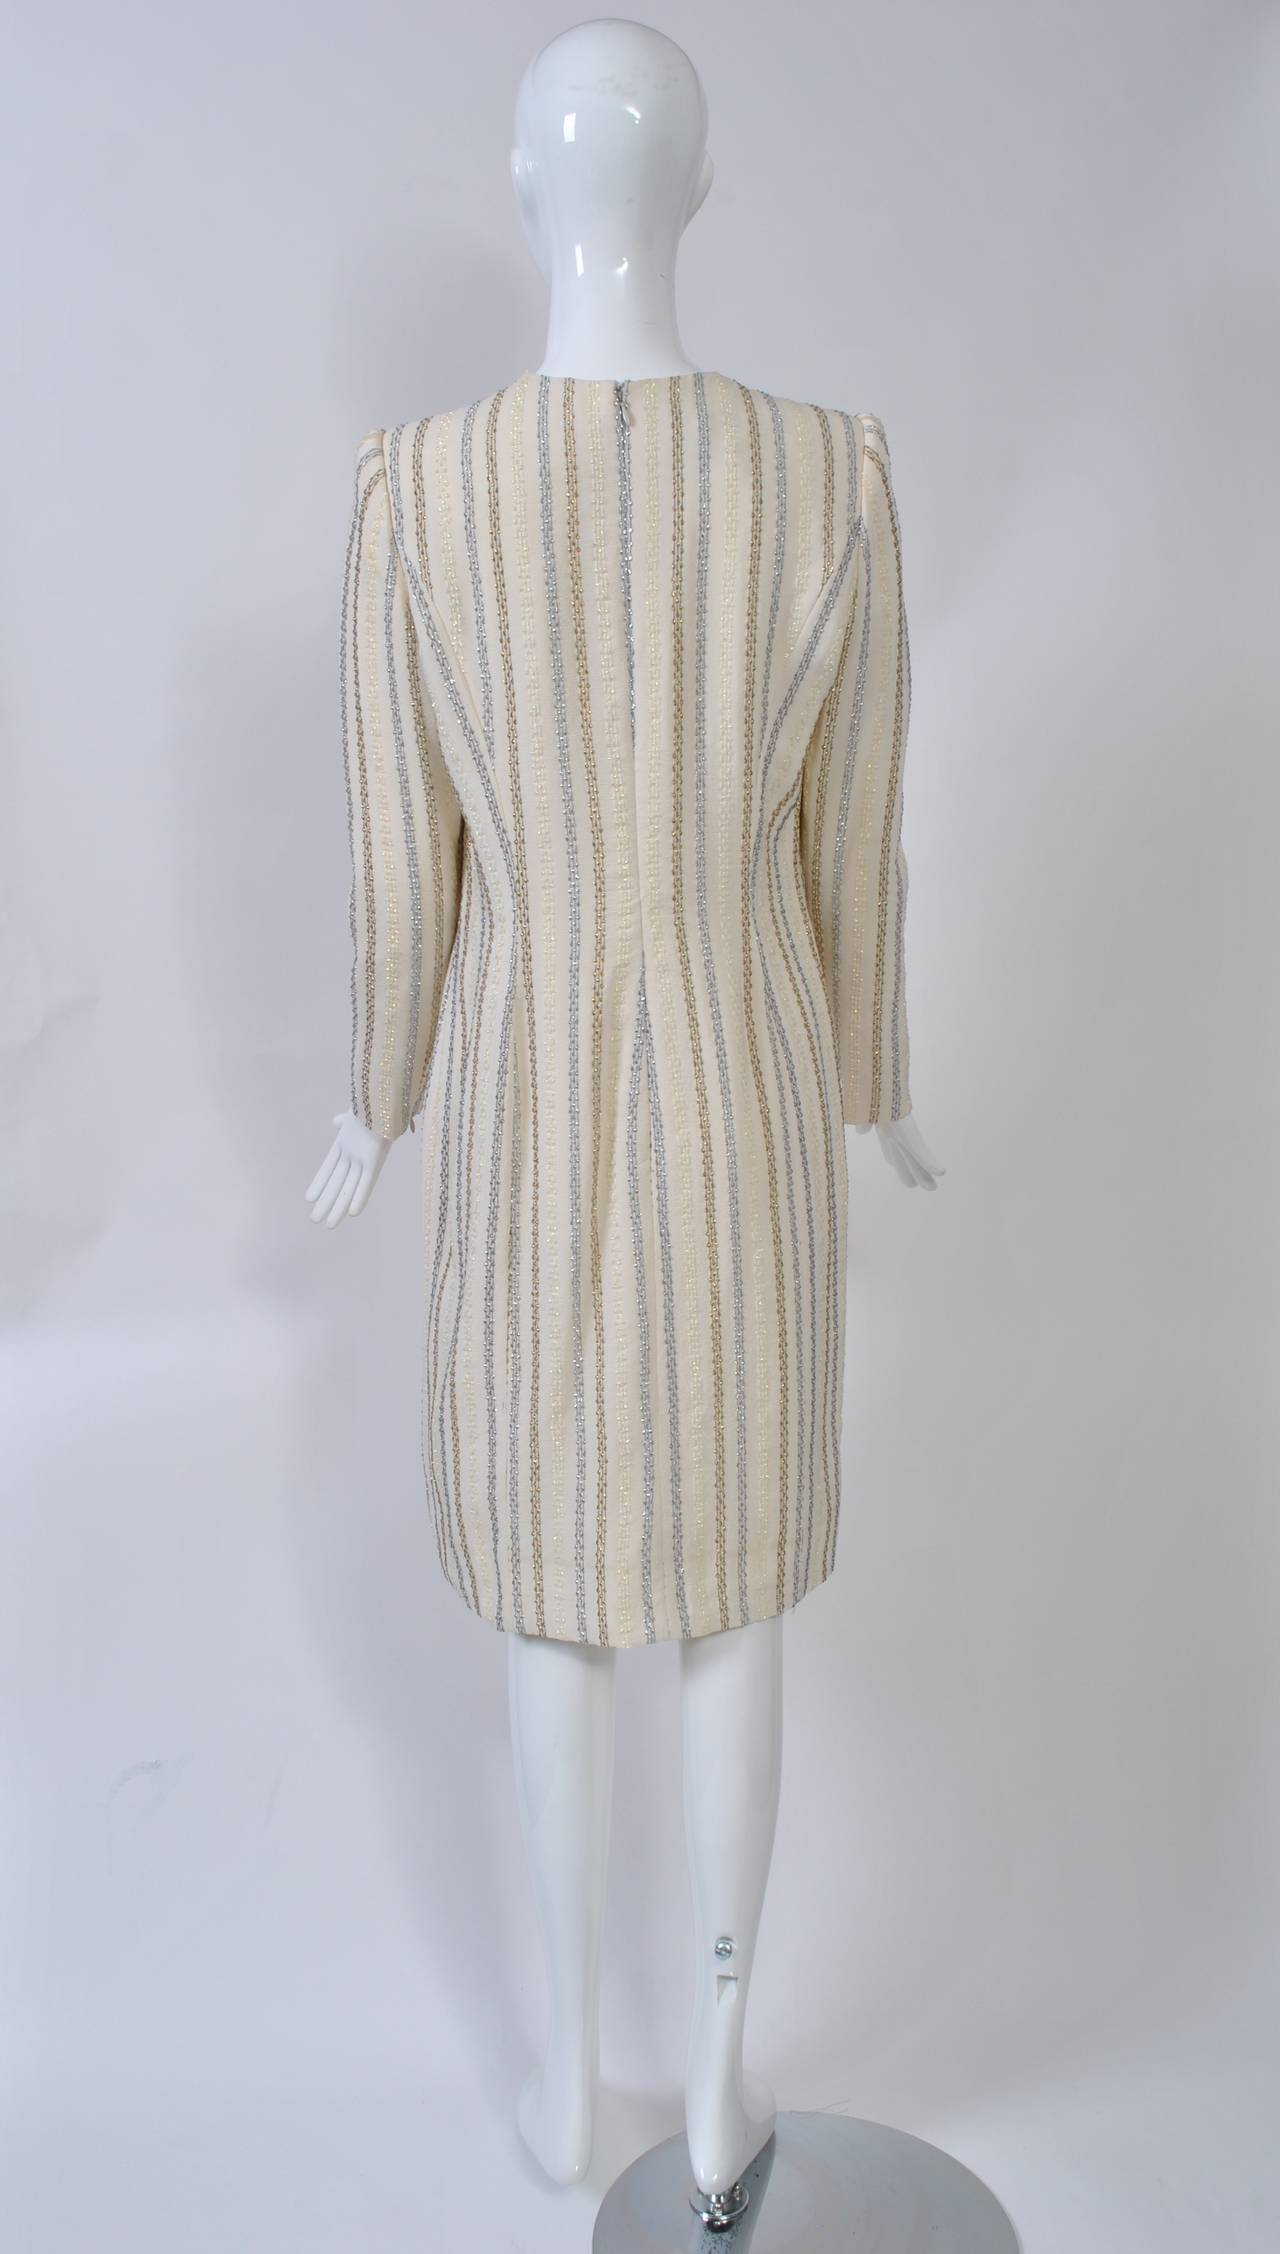 Carolina Herrera Ivory and Metallic Dress In Excellent Condition For Sale In Alford, MA